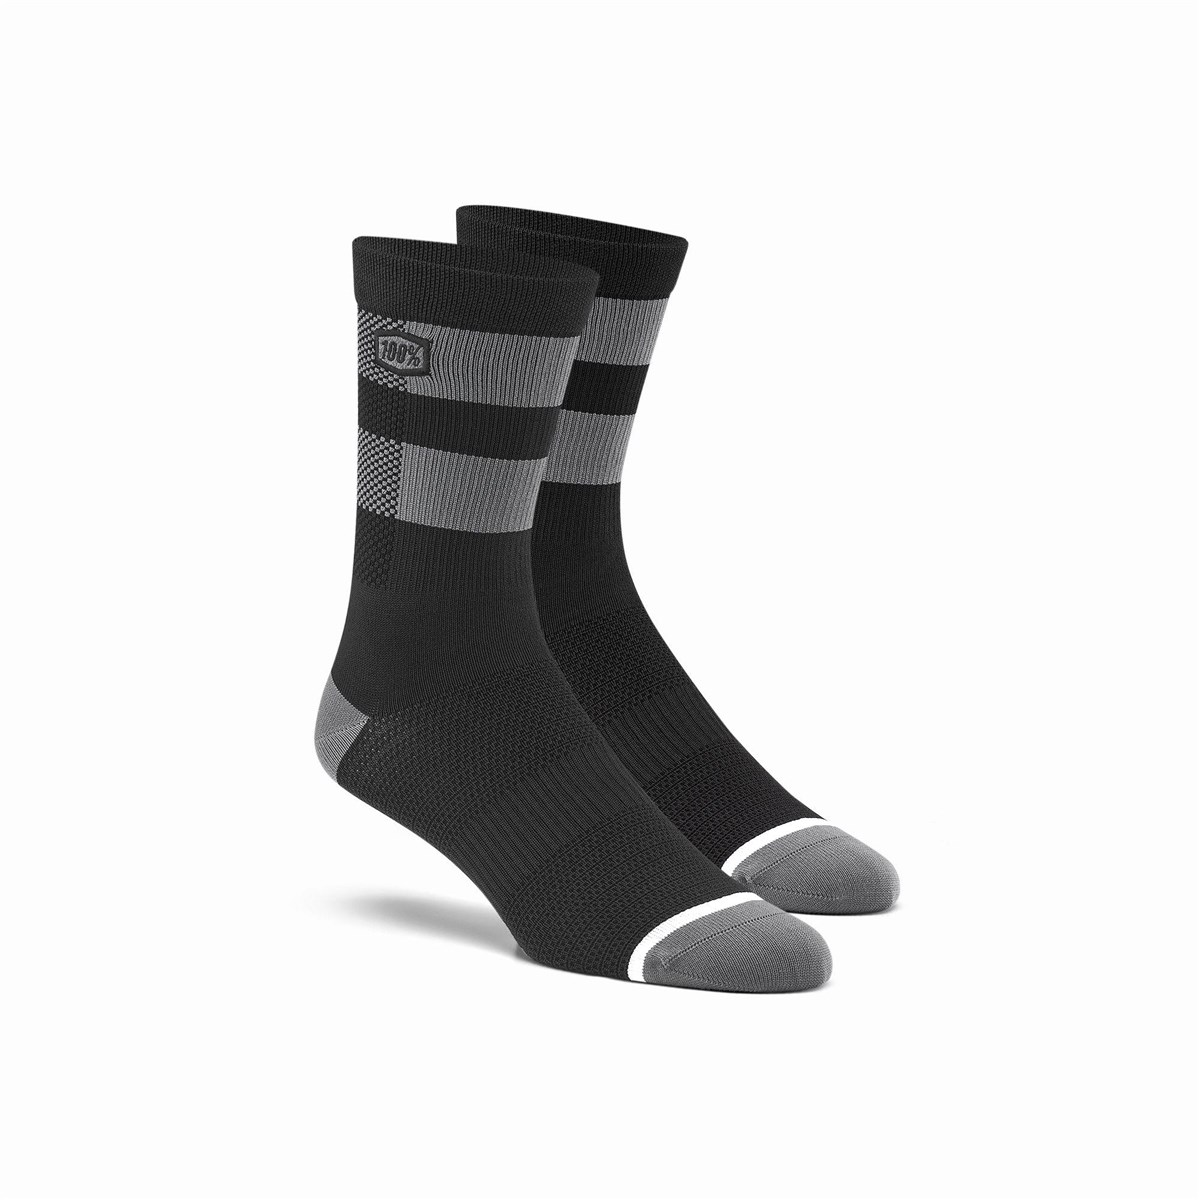 100% Flow Performance Socks | Socks